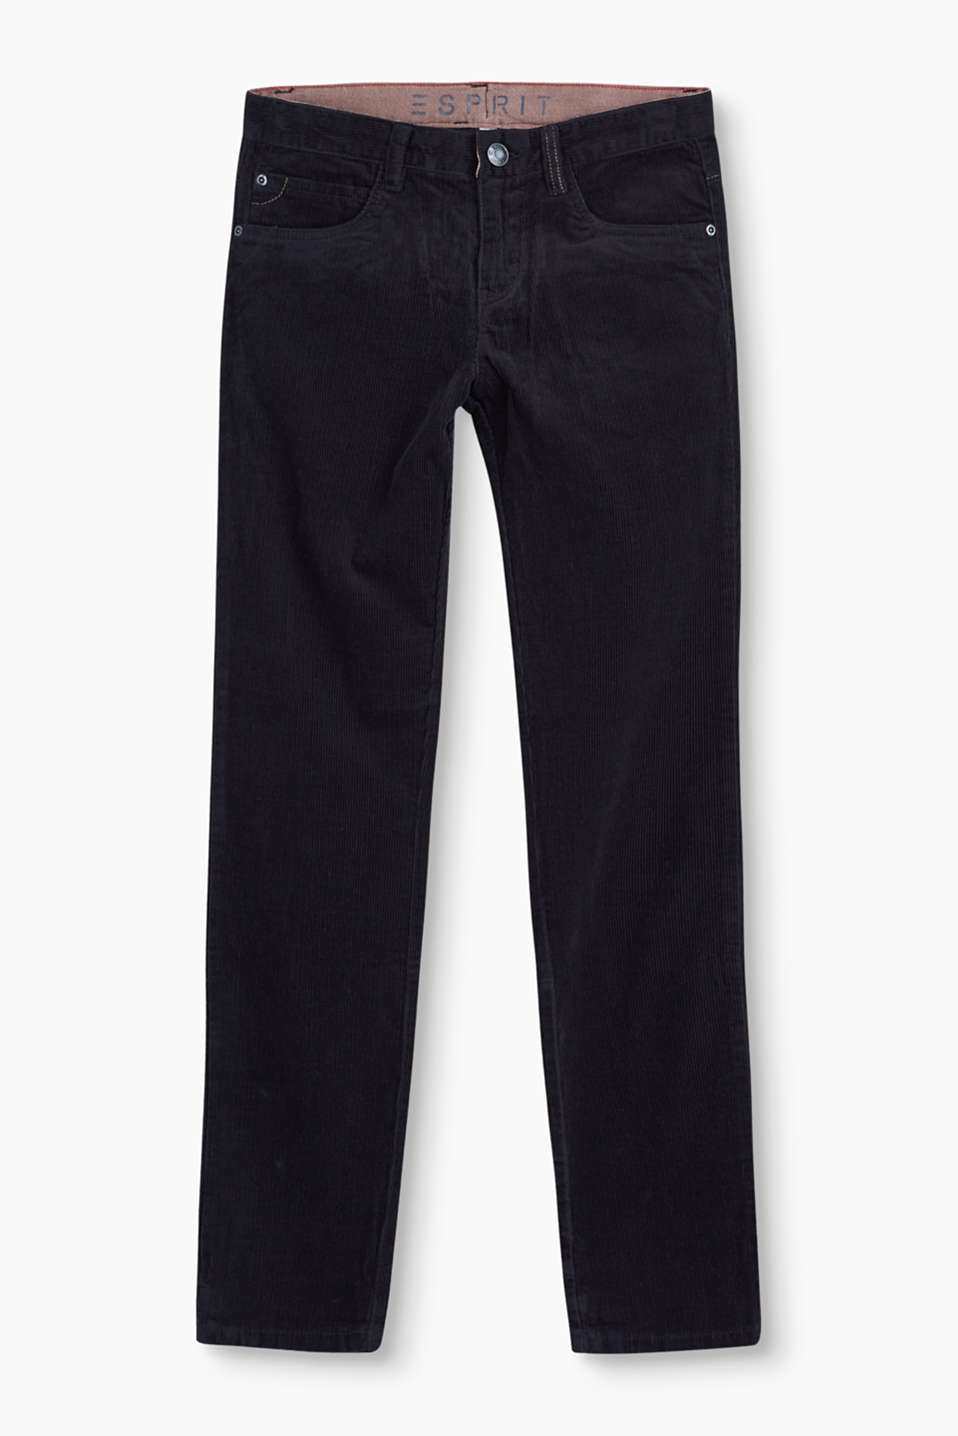 Esprit - Cotton cord trousers + an adjustable waist